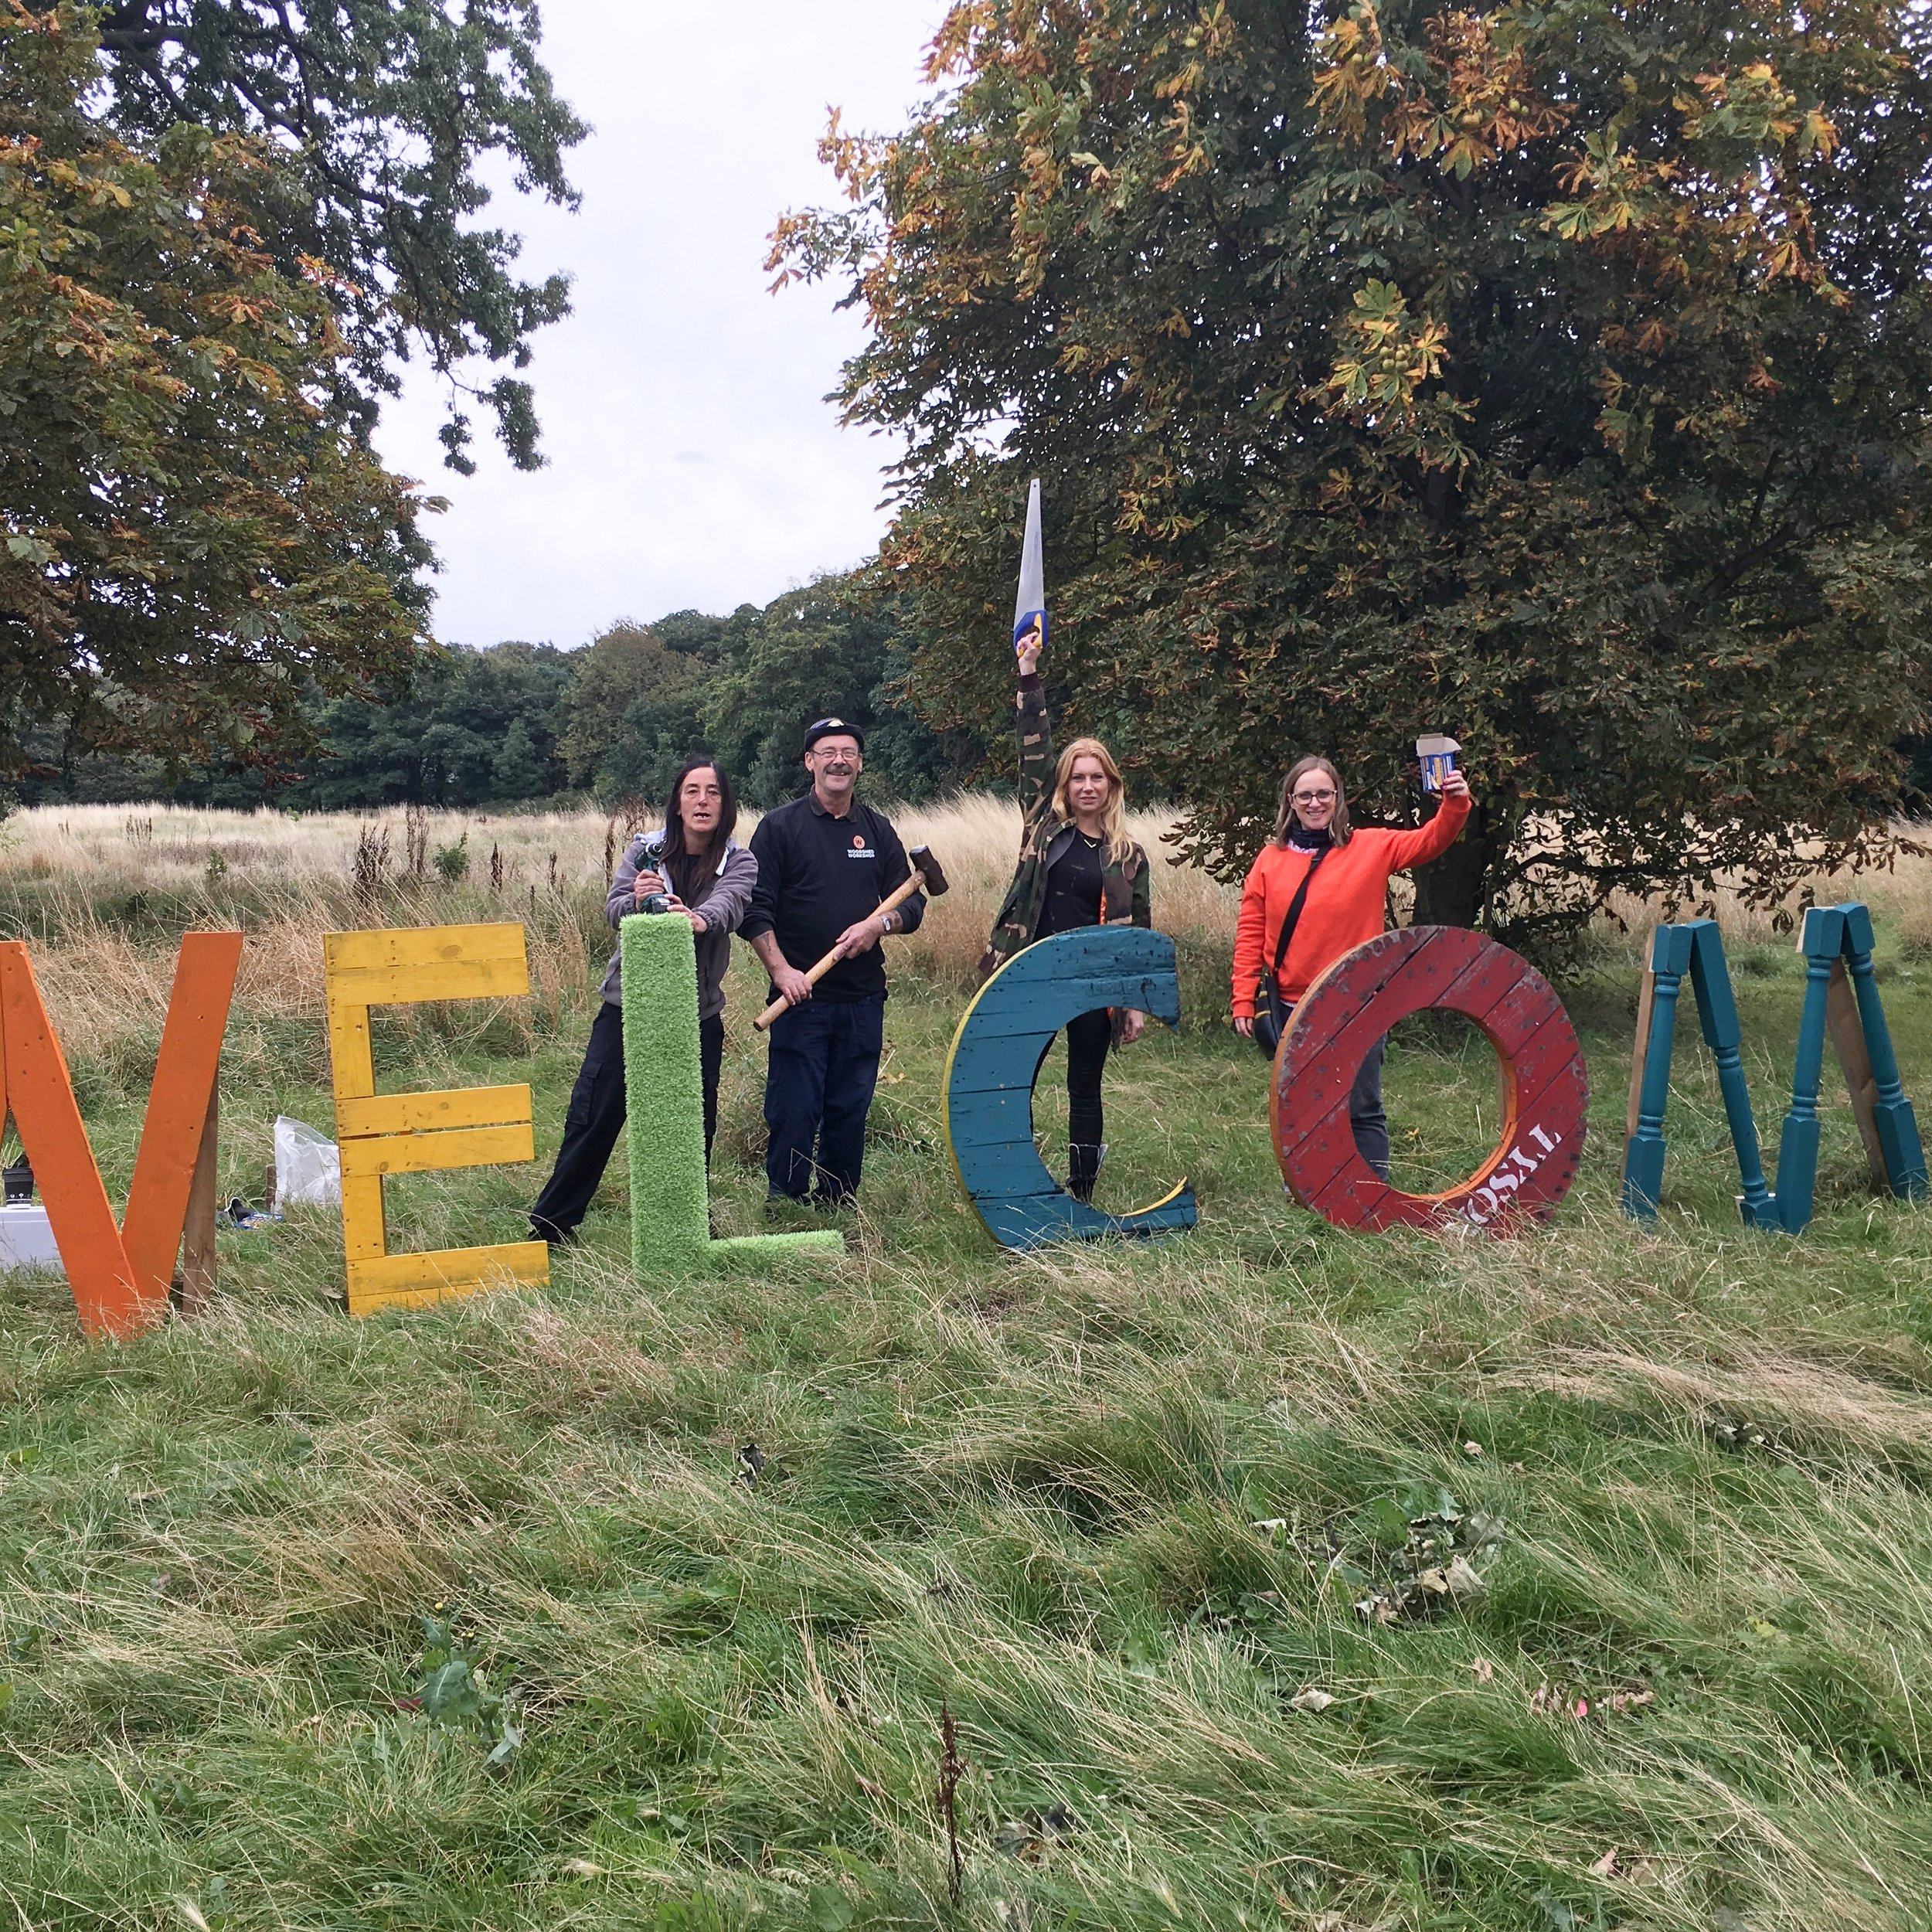 Me and the lovely Woodshed workshop lot, moments before opening building the welcome sign!